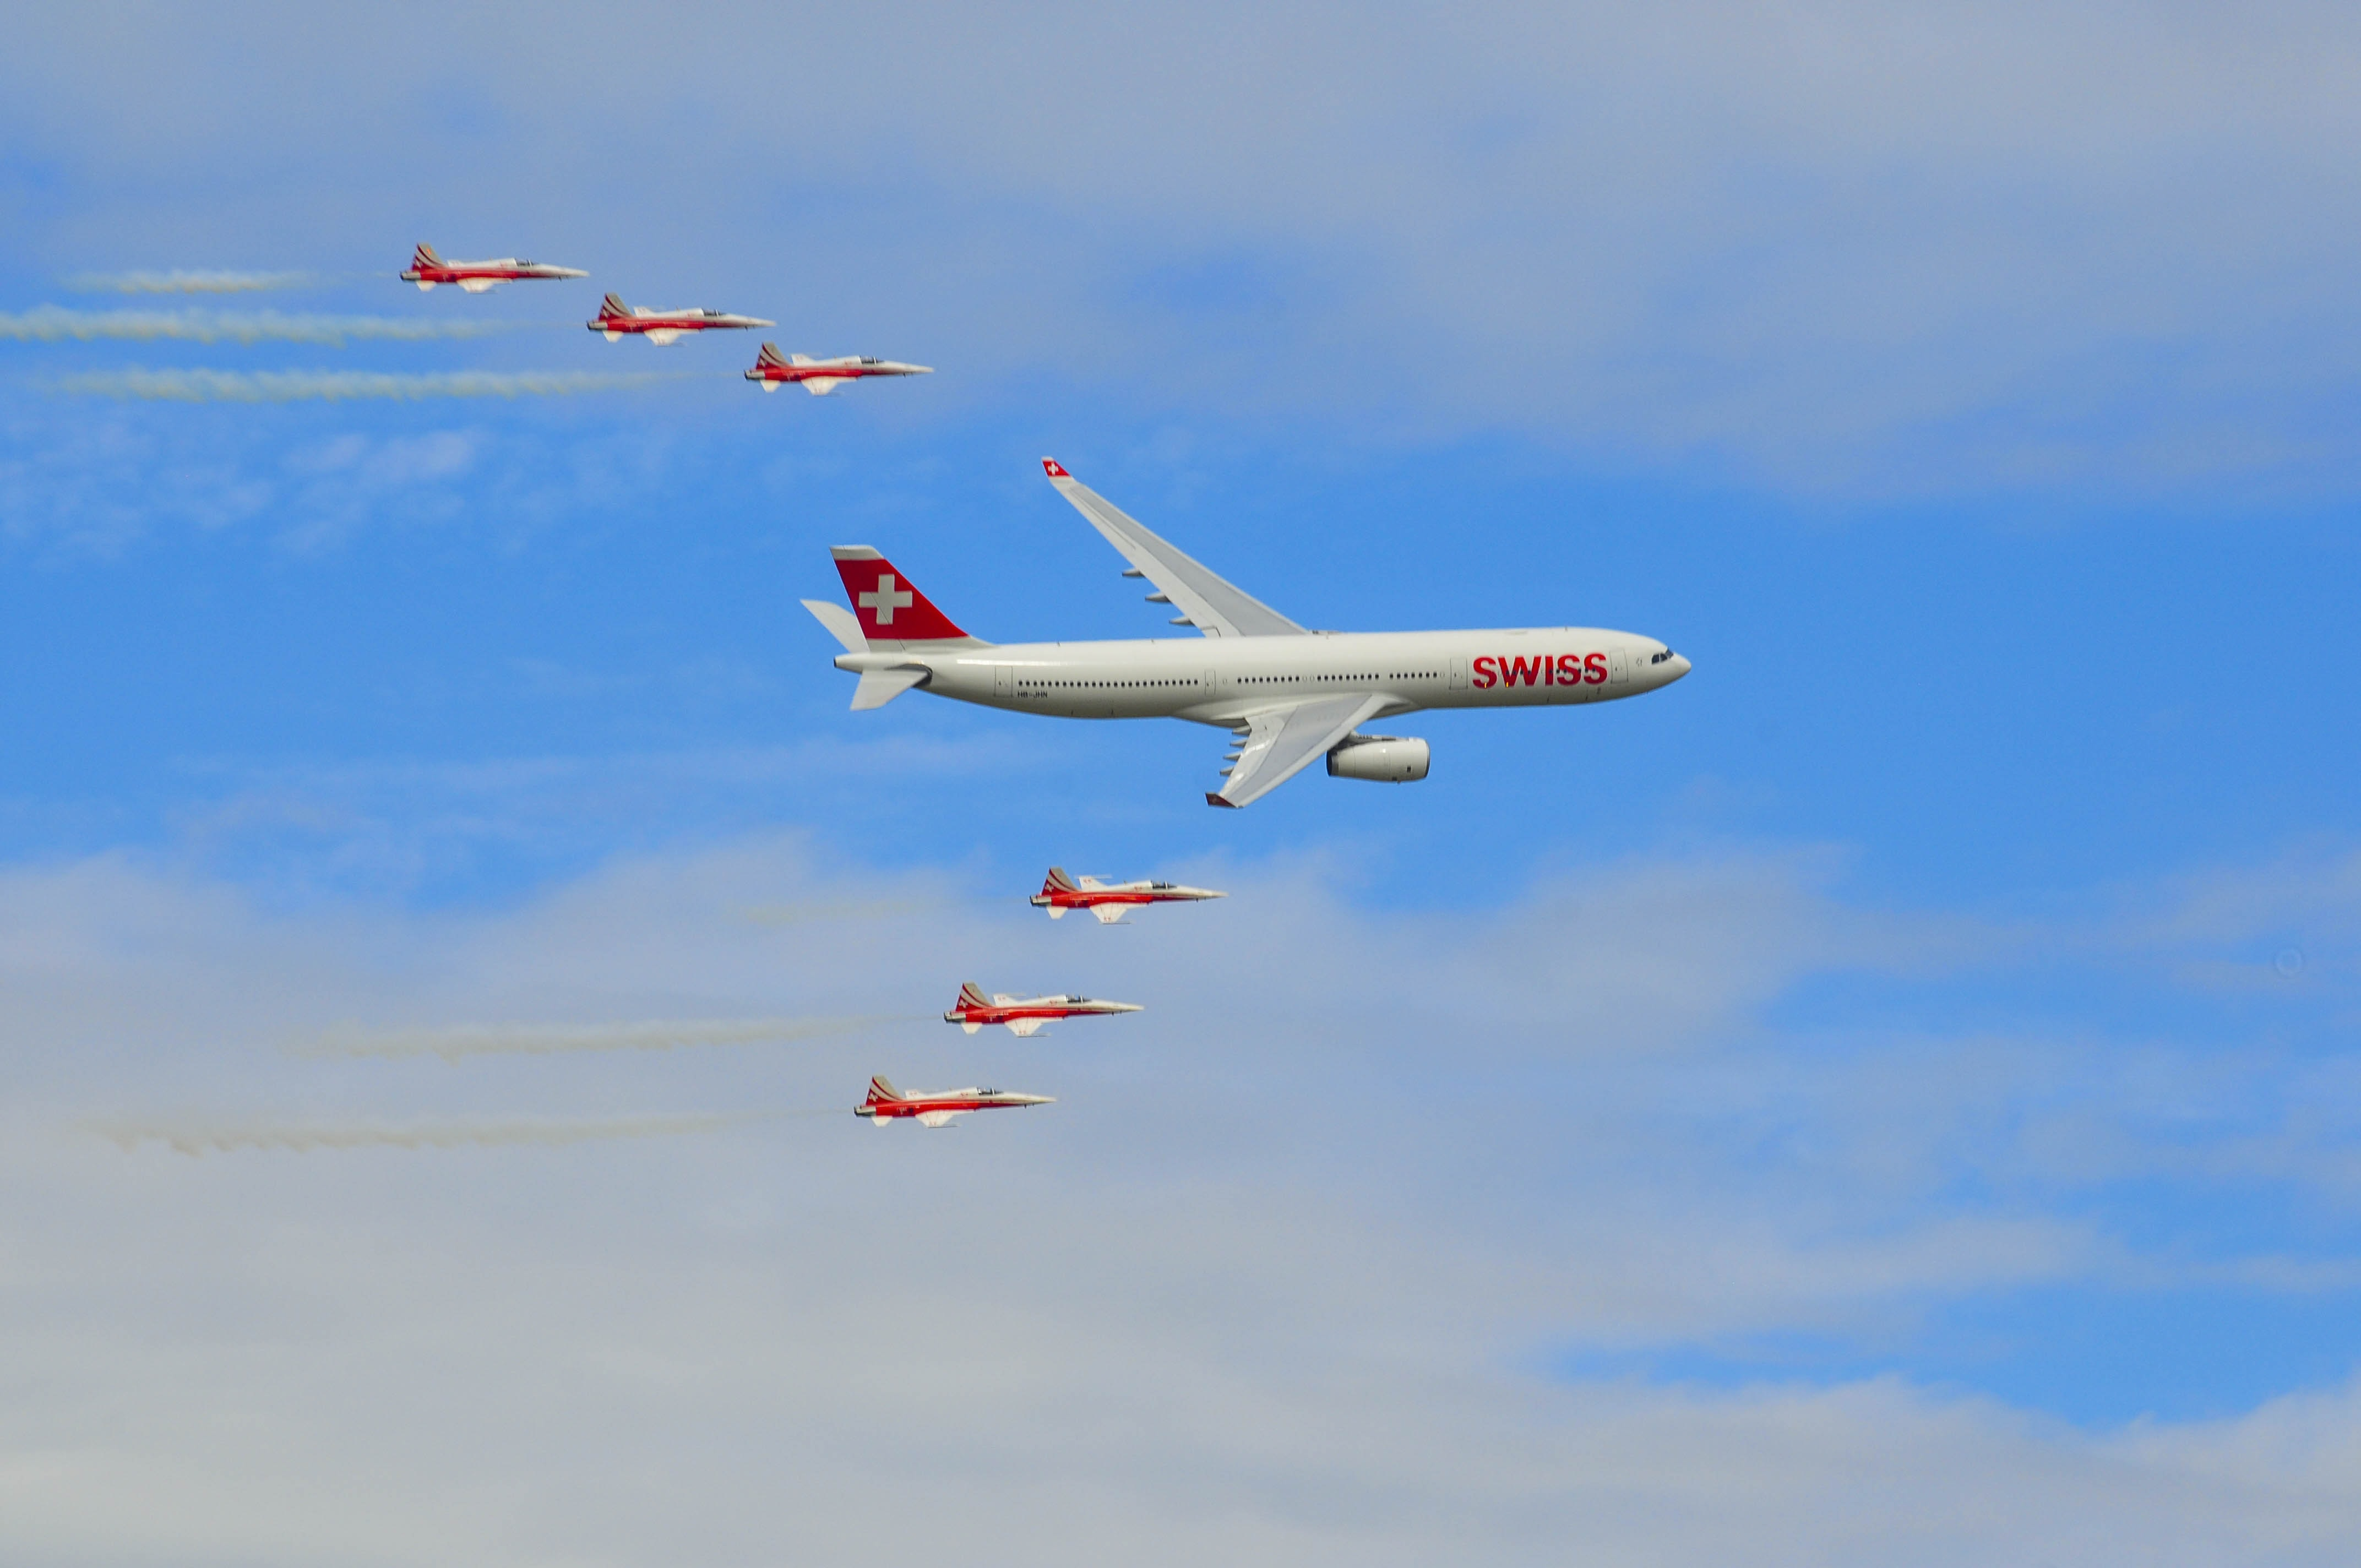 white and red Swiss airliner on flight